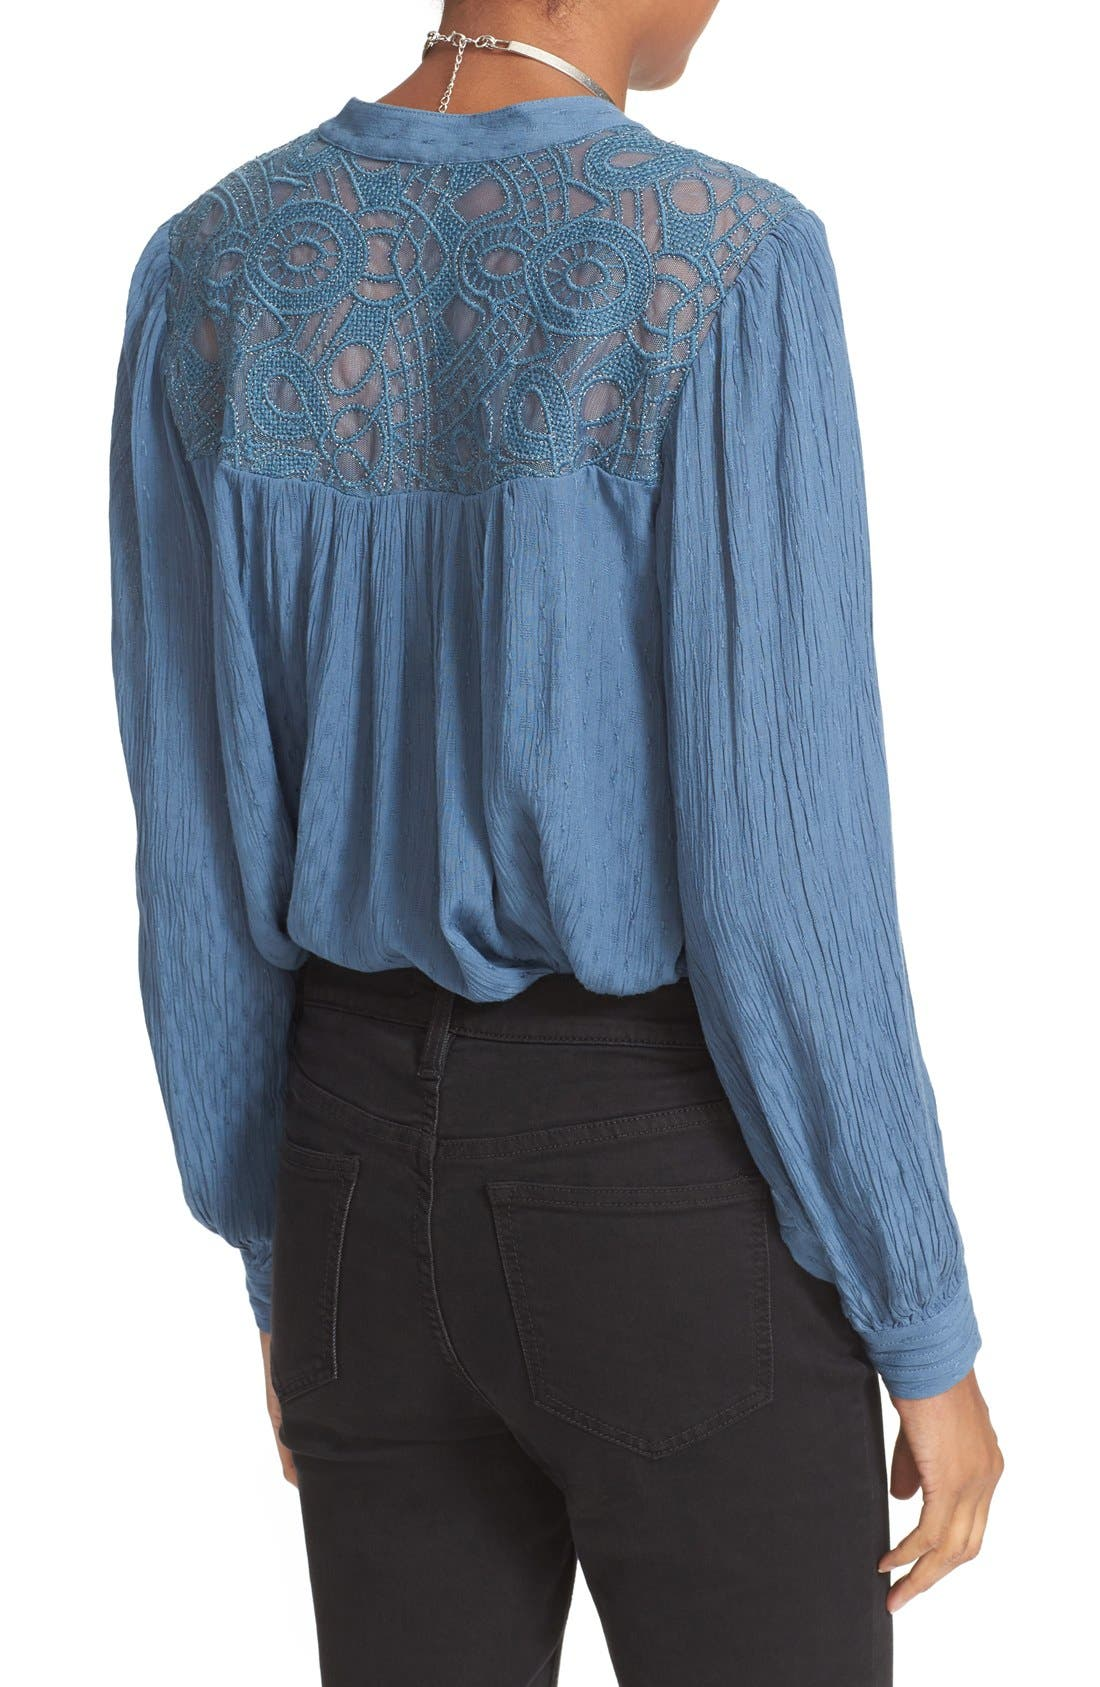 FREE PEOPLE, Canyon Rose Embroidered Yoke Blouse, Alternate thumbnail 3, color, 400